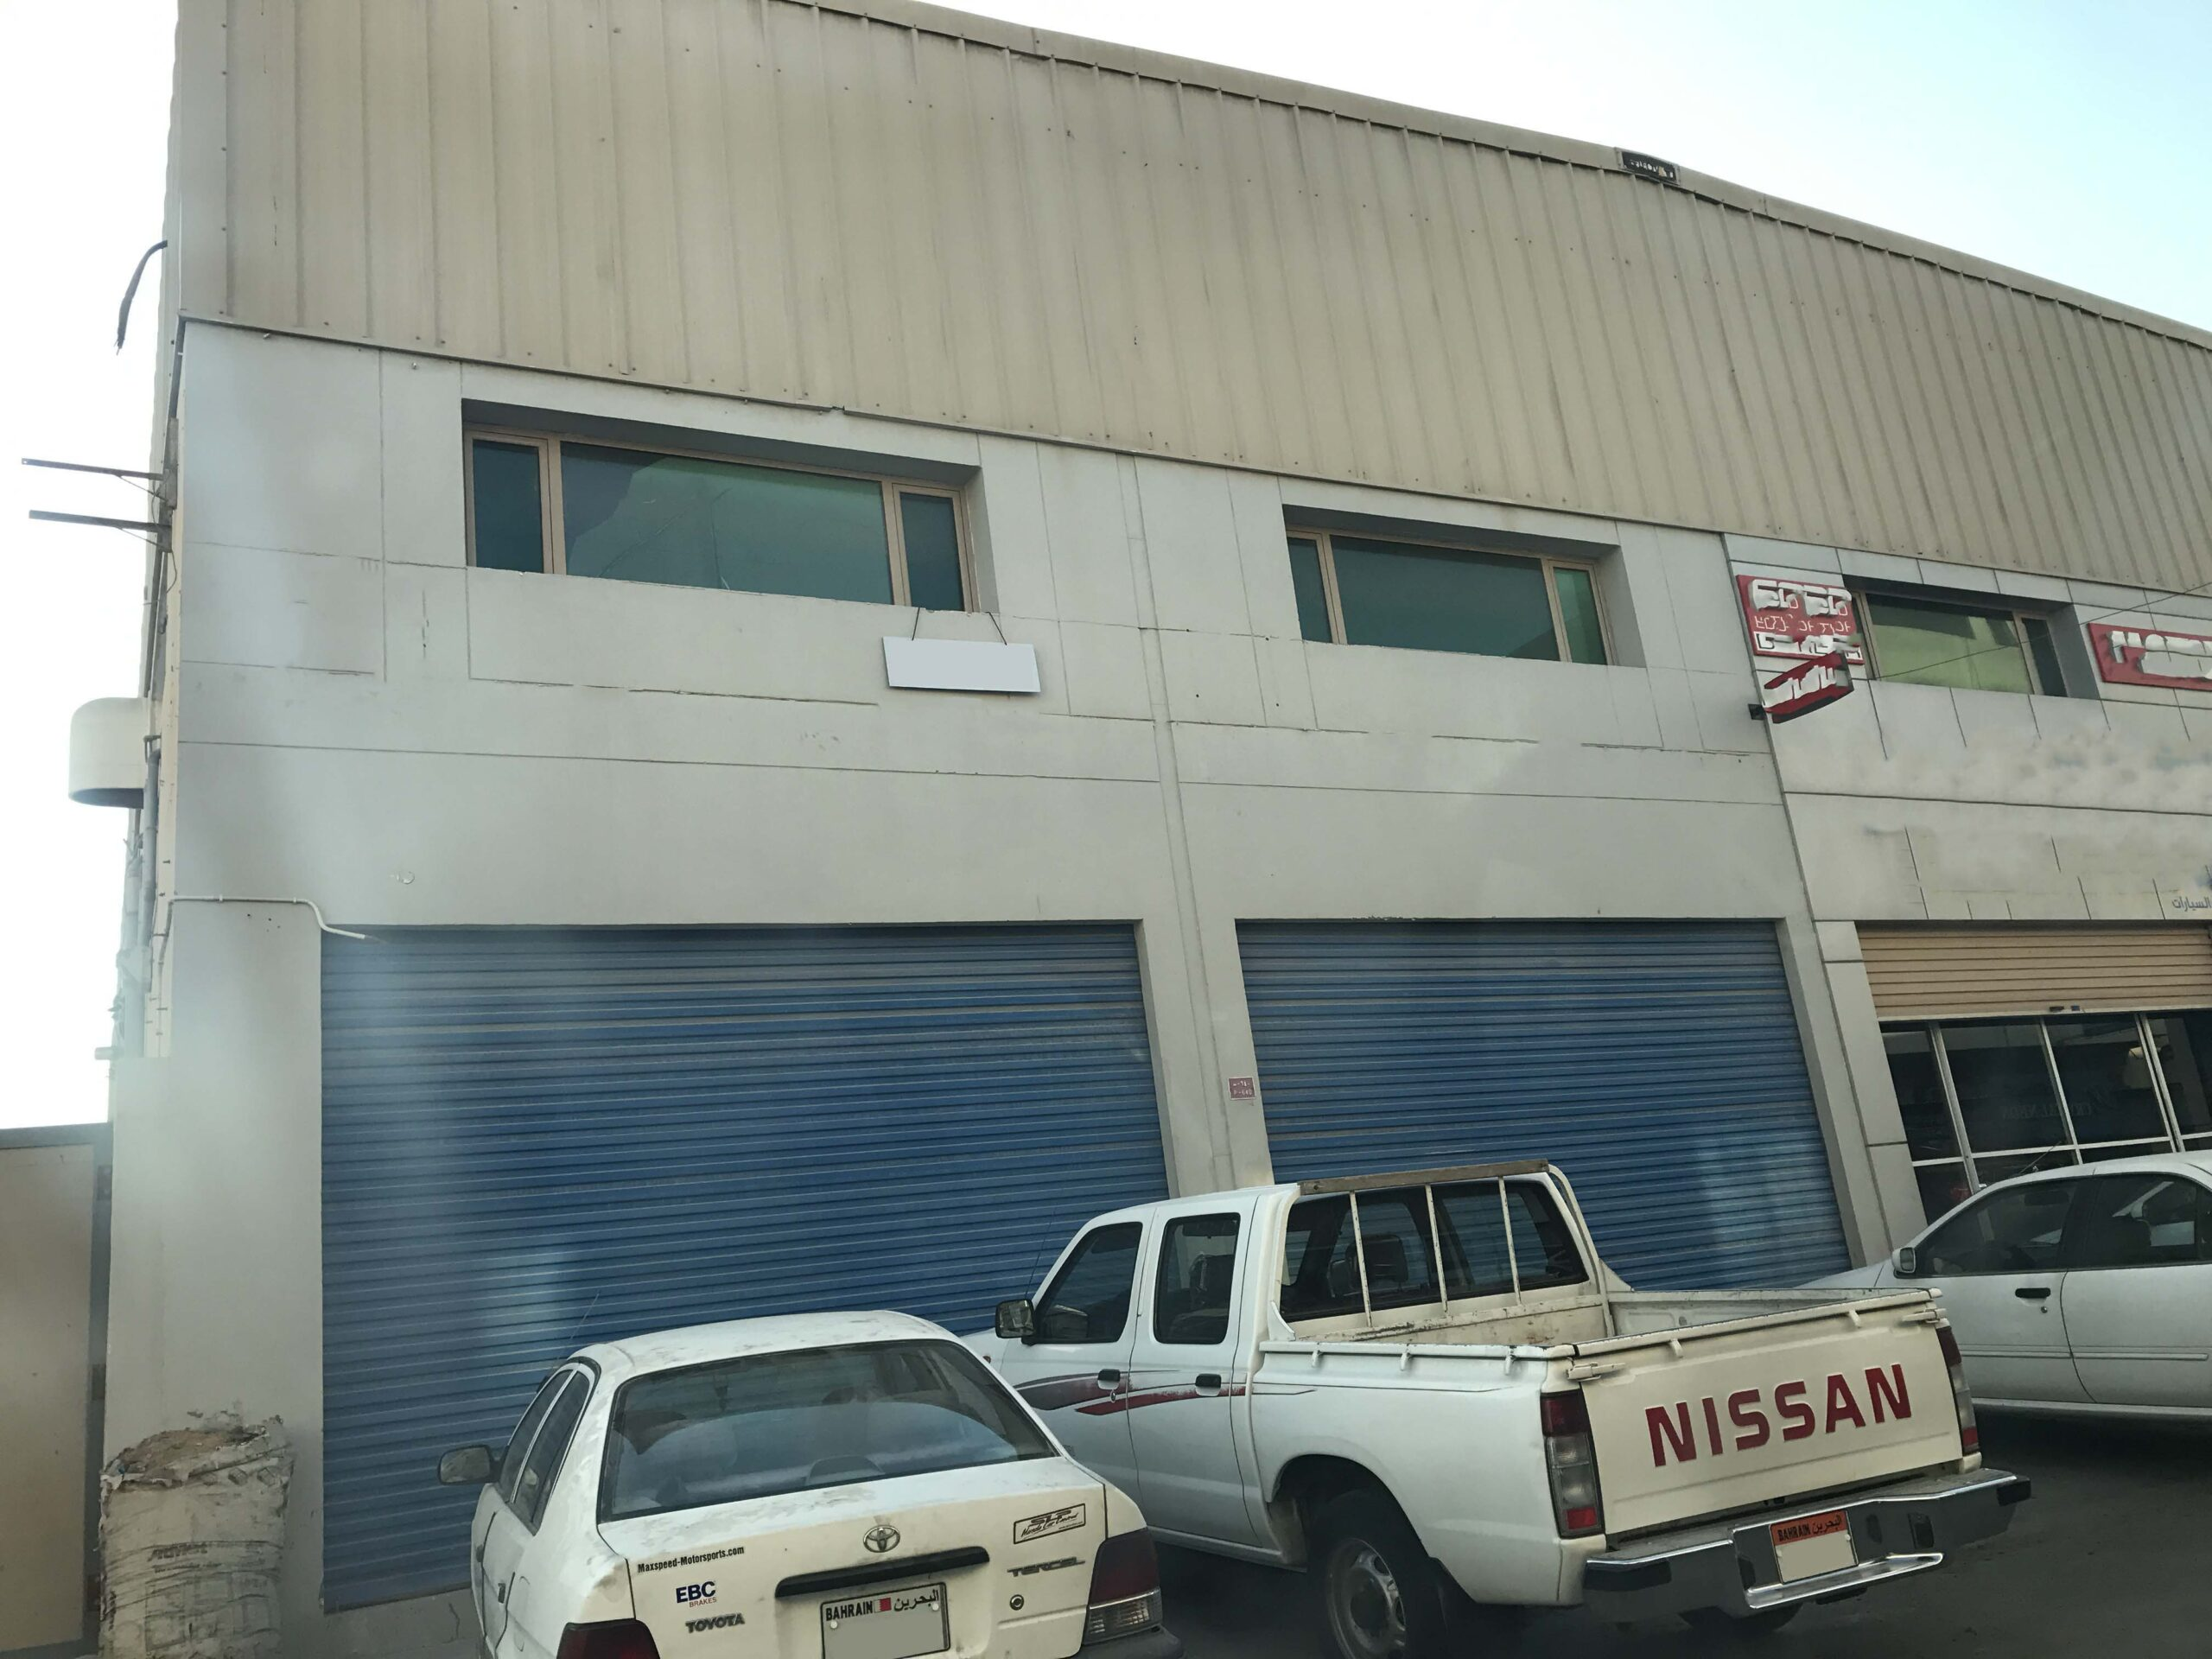 Shops / Workshop for rent, with total 220.00 SQM, in Tubli industrial area